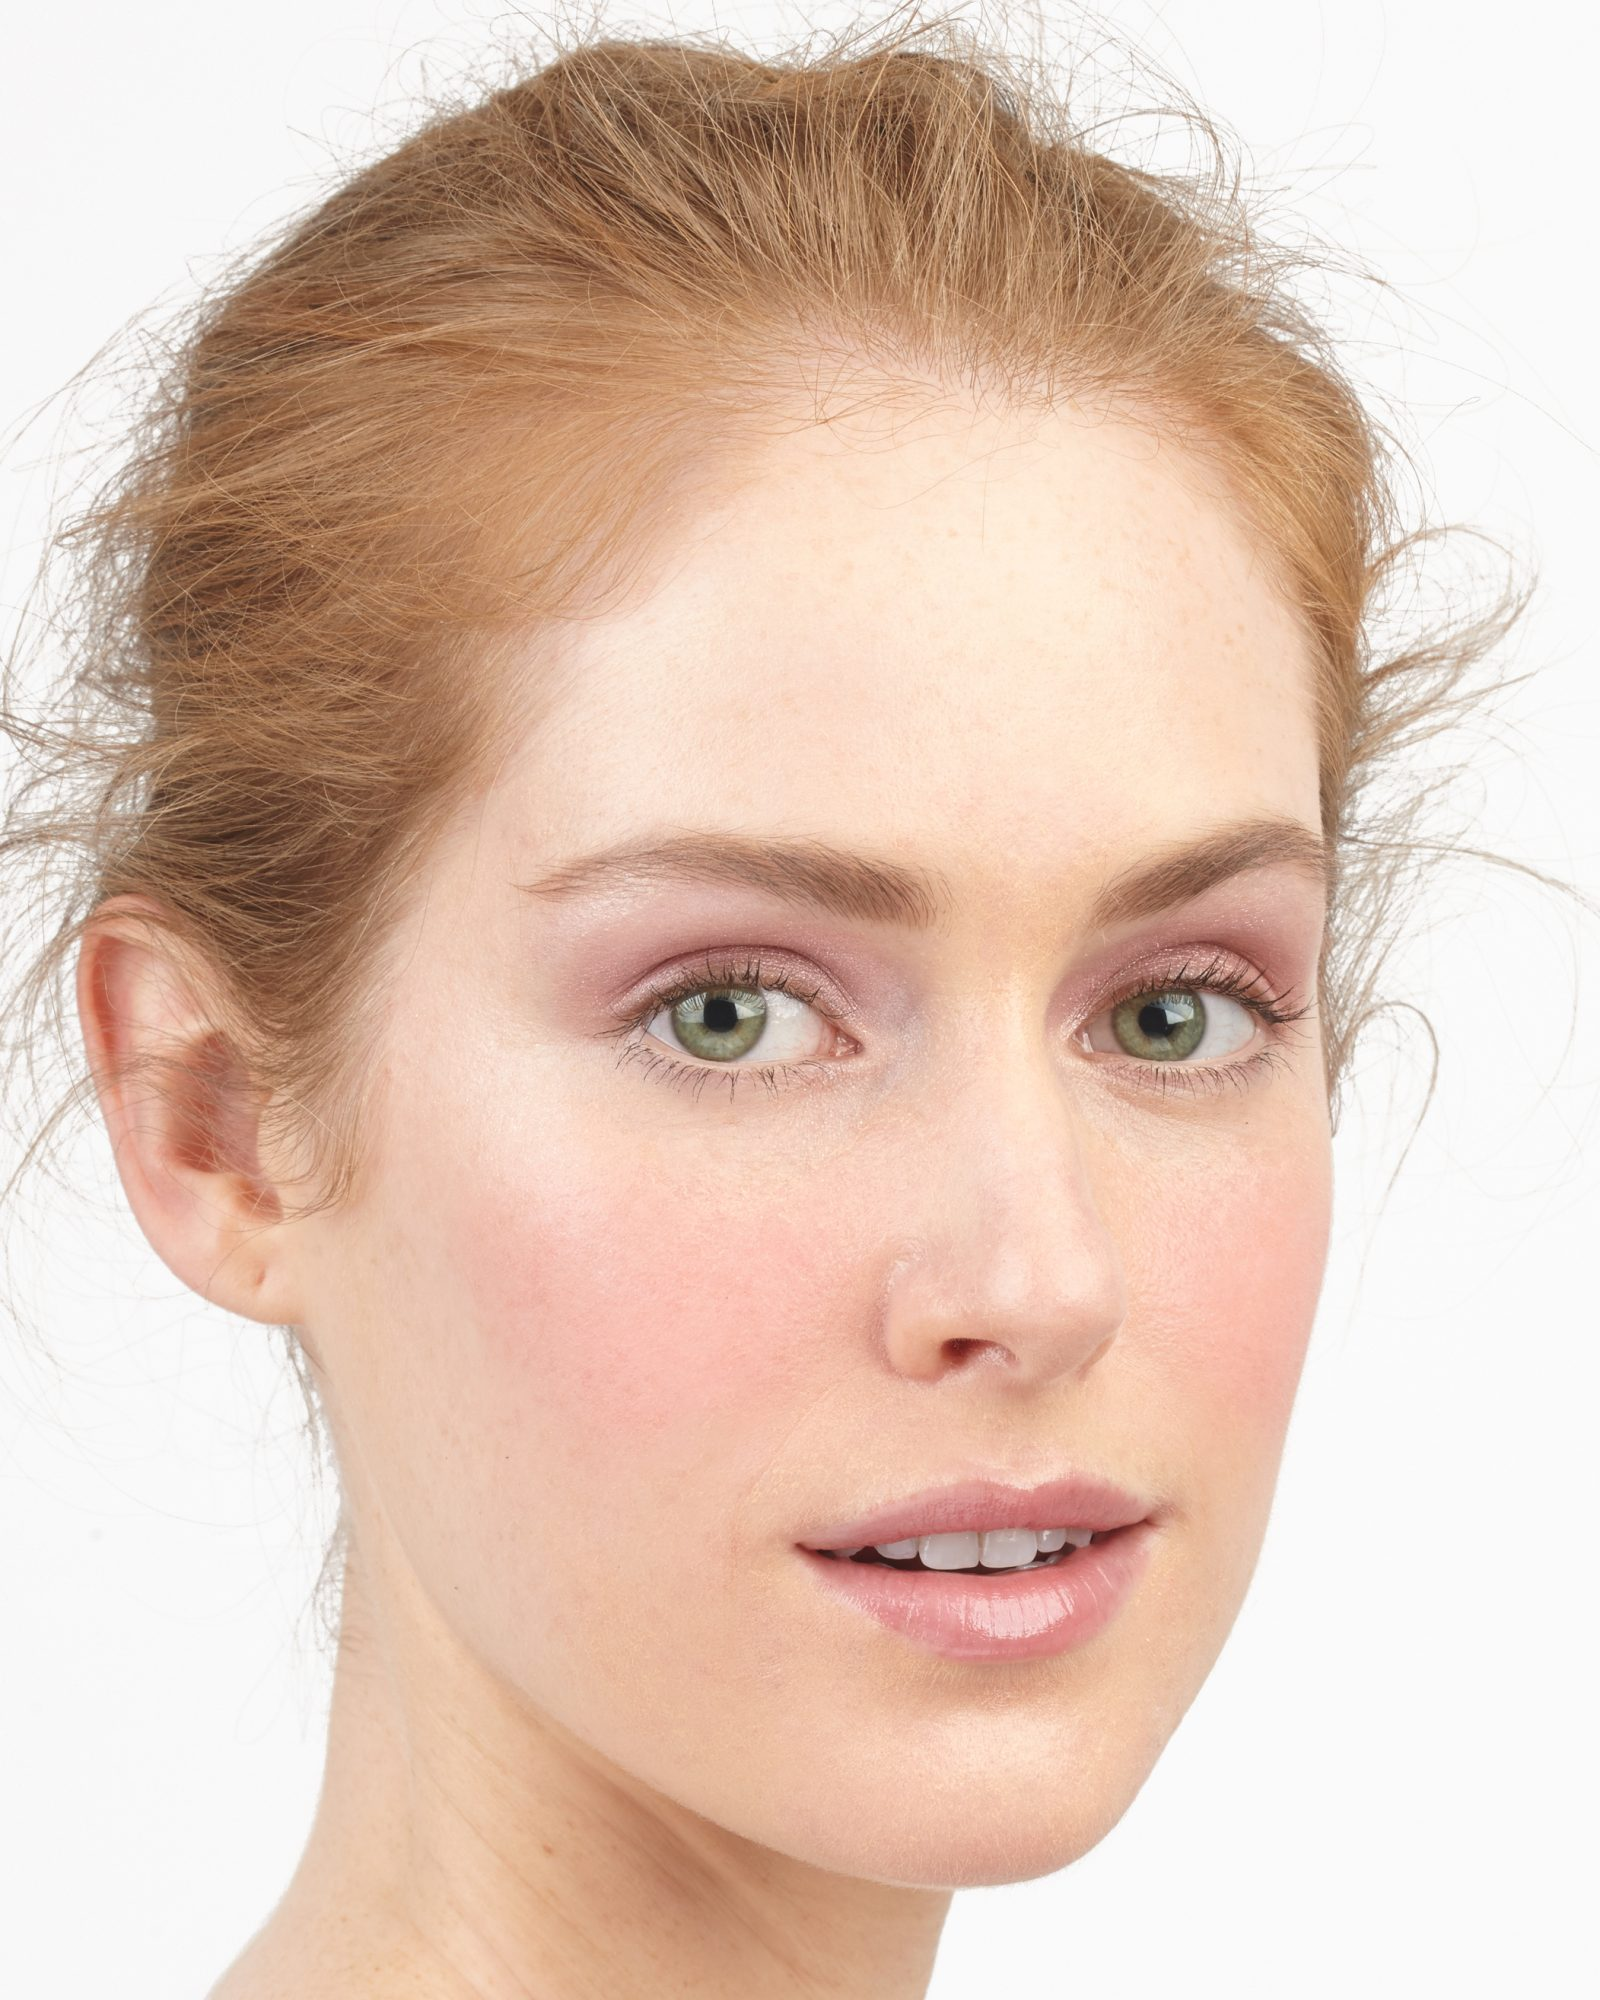 12 Natural Wedding Makeup Looks for Your Big Day  Martha Stewart